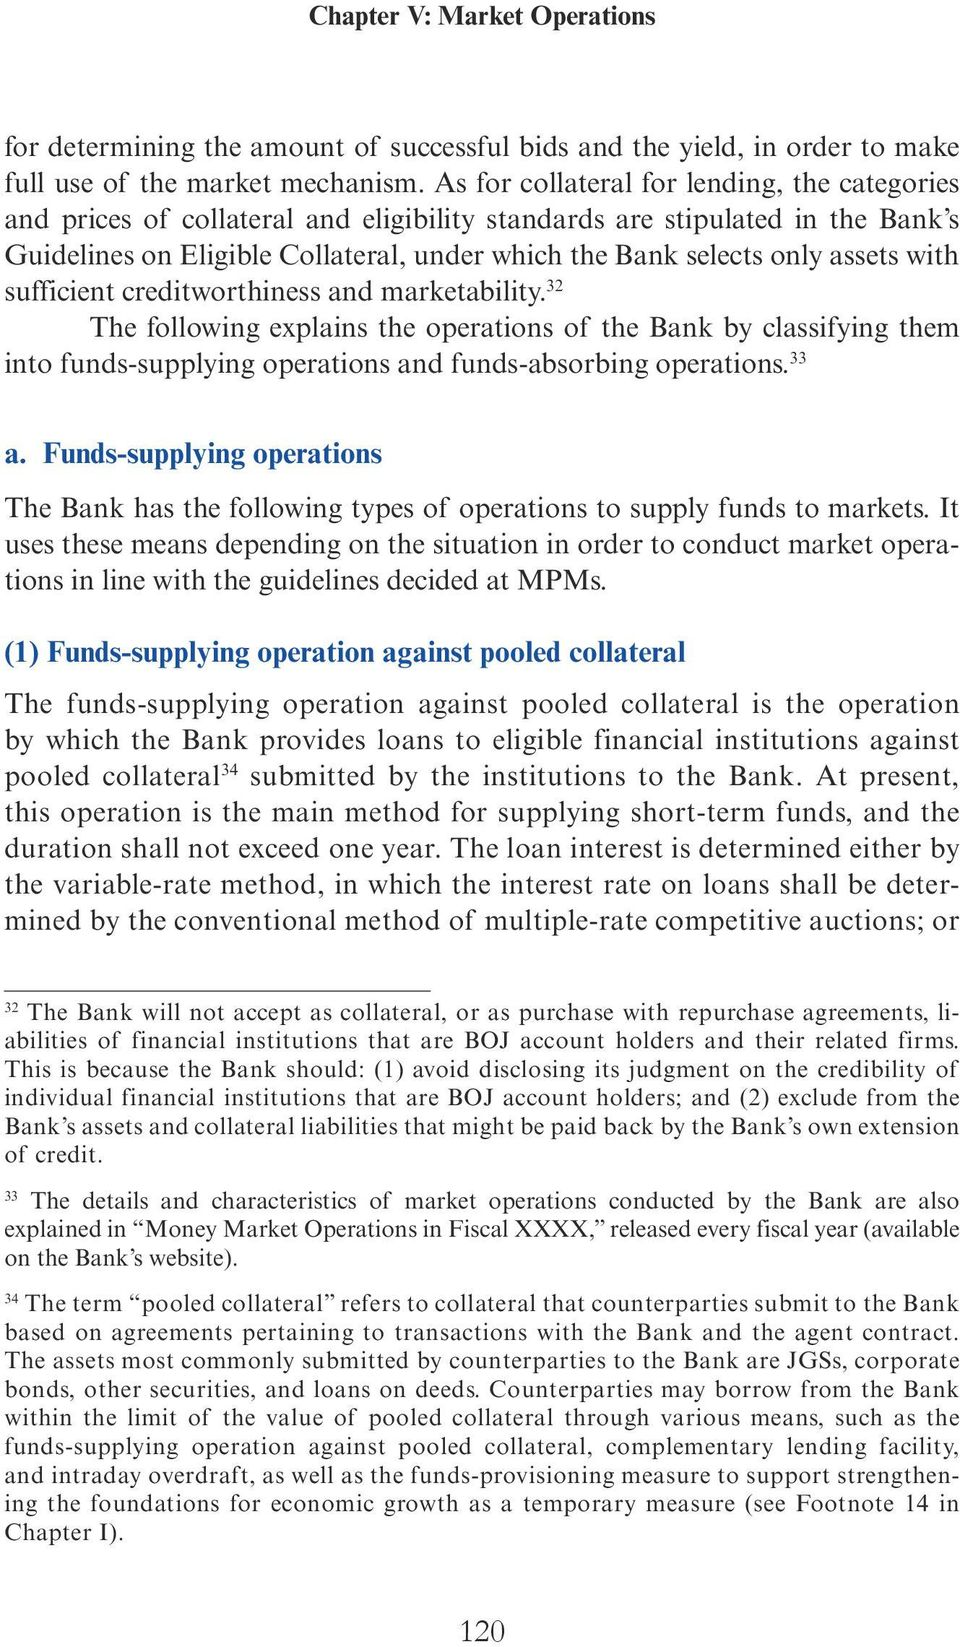 assets with sufficient creditworthiness and marketability. 32 The following explains the operations of the Bank by classifying them into funds-supplying operations and funds-absorbing operations.